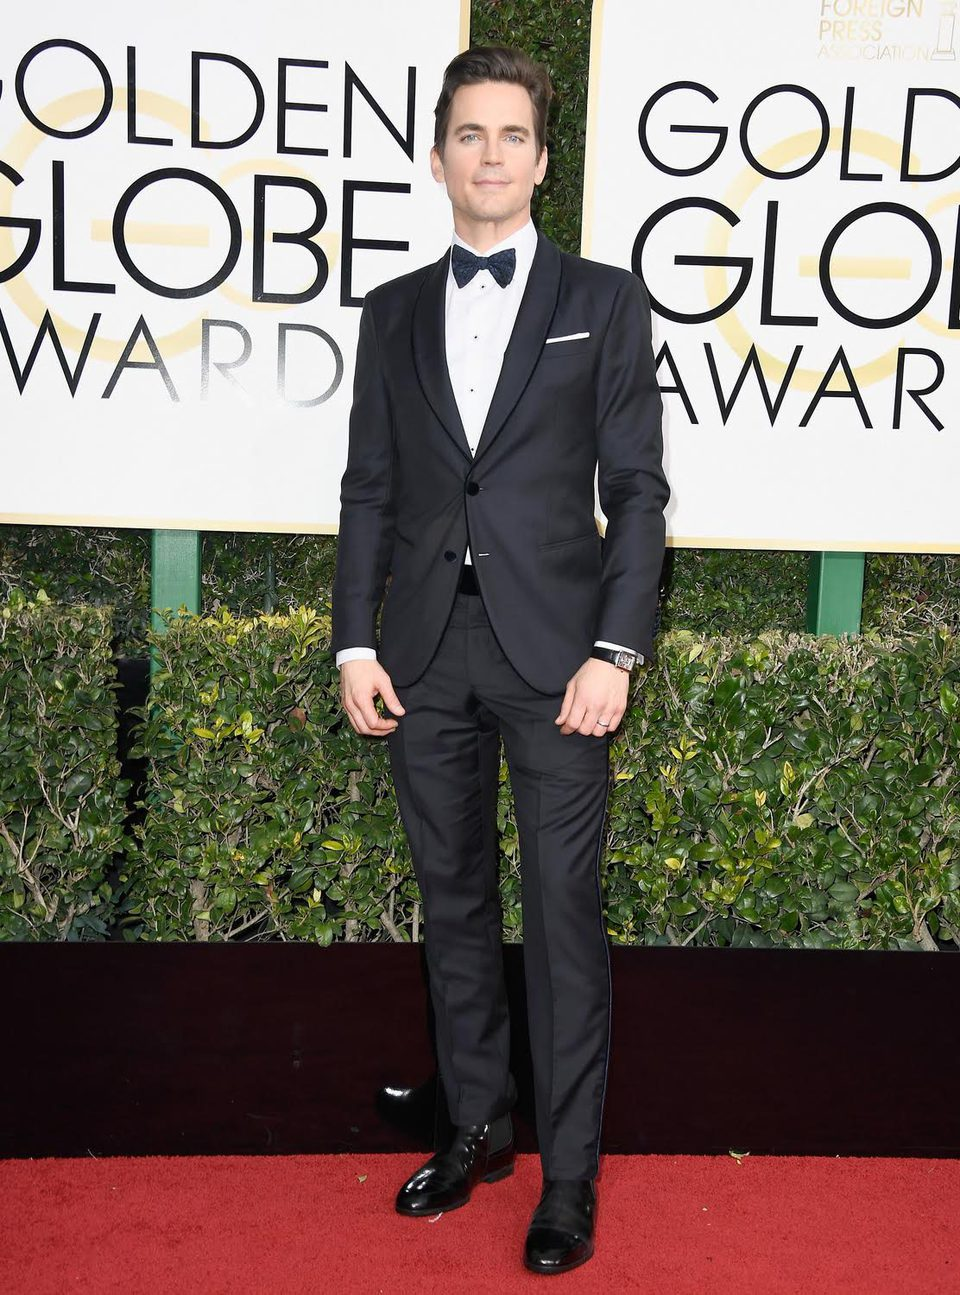 Matt Bomer at Golden Globes 2017 red carpet